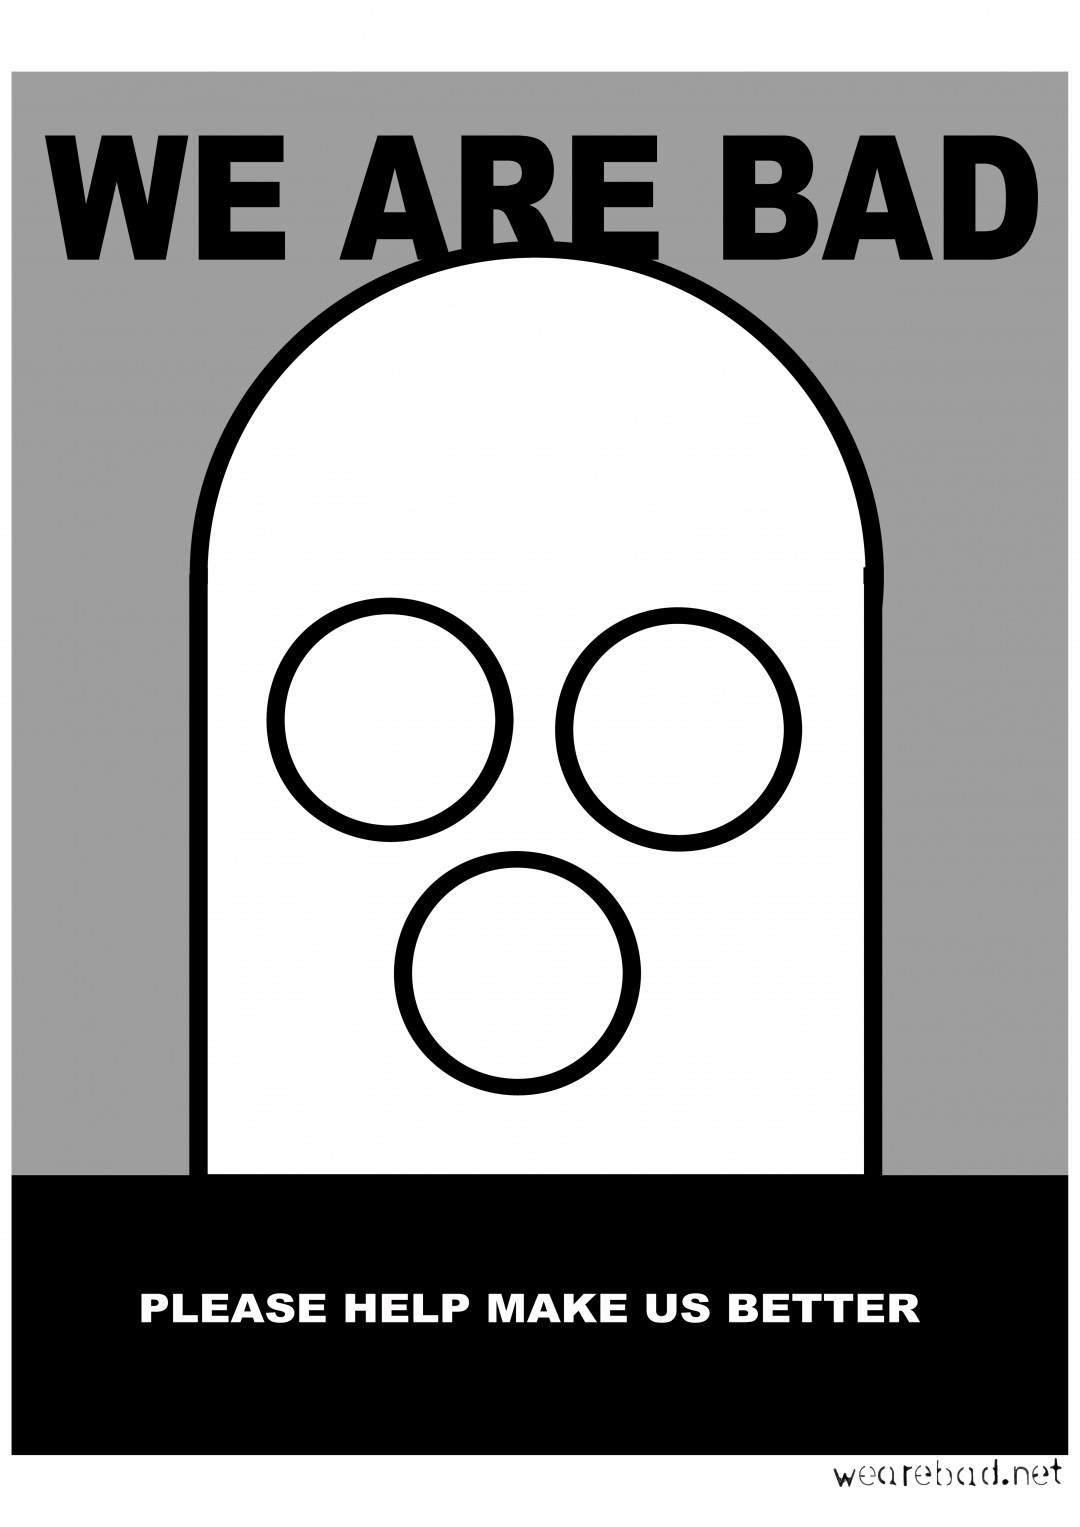 WE ARE BAD poster by Robin Bale